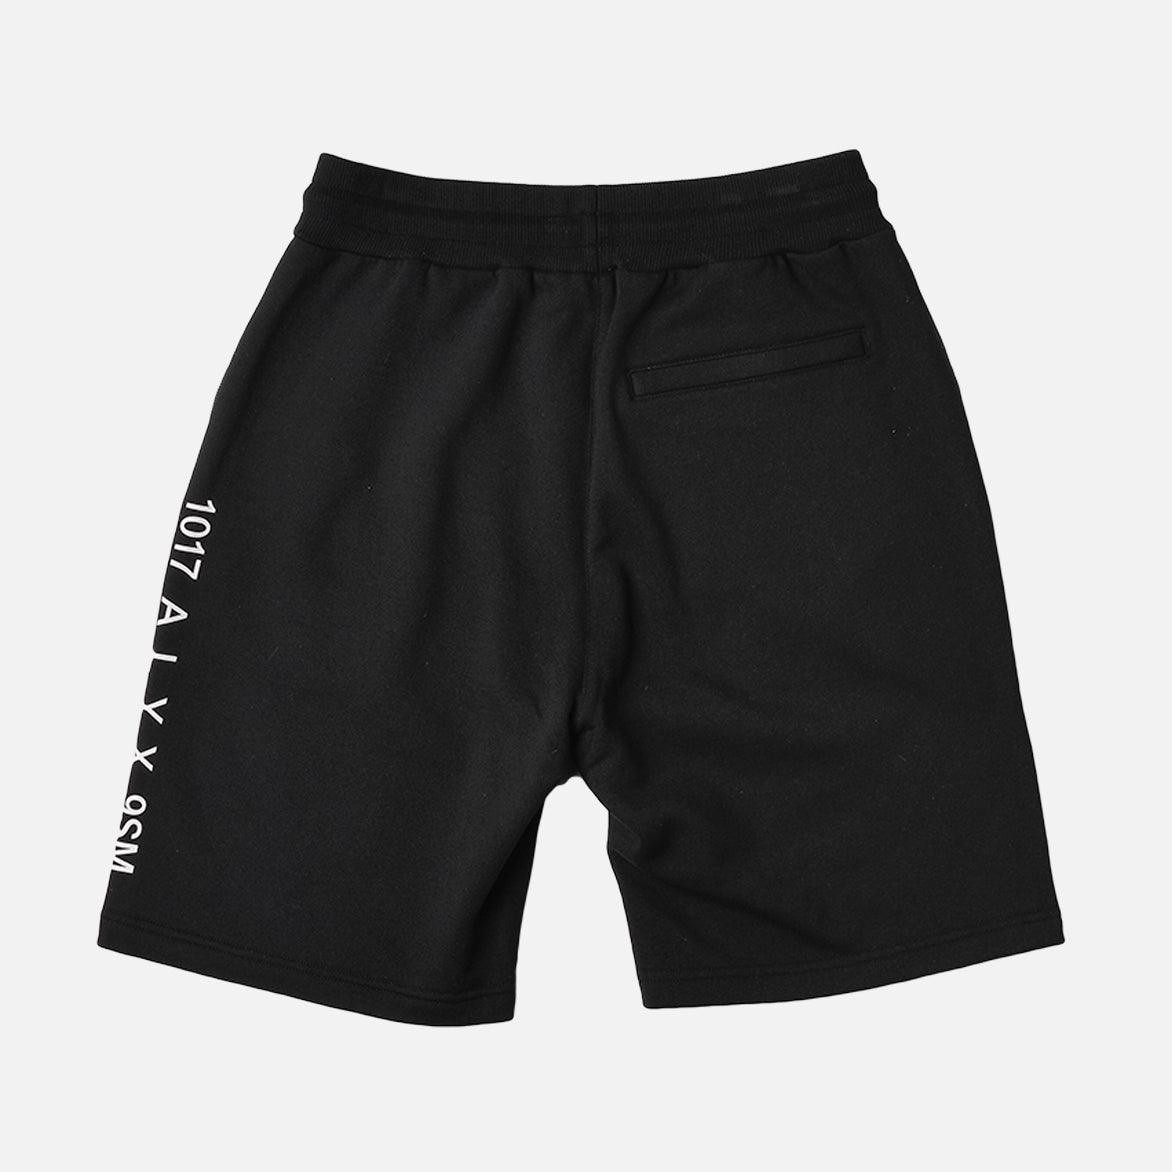 AXEL SWEAT SHORT - BLACK